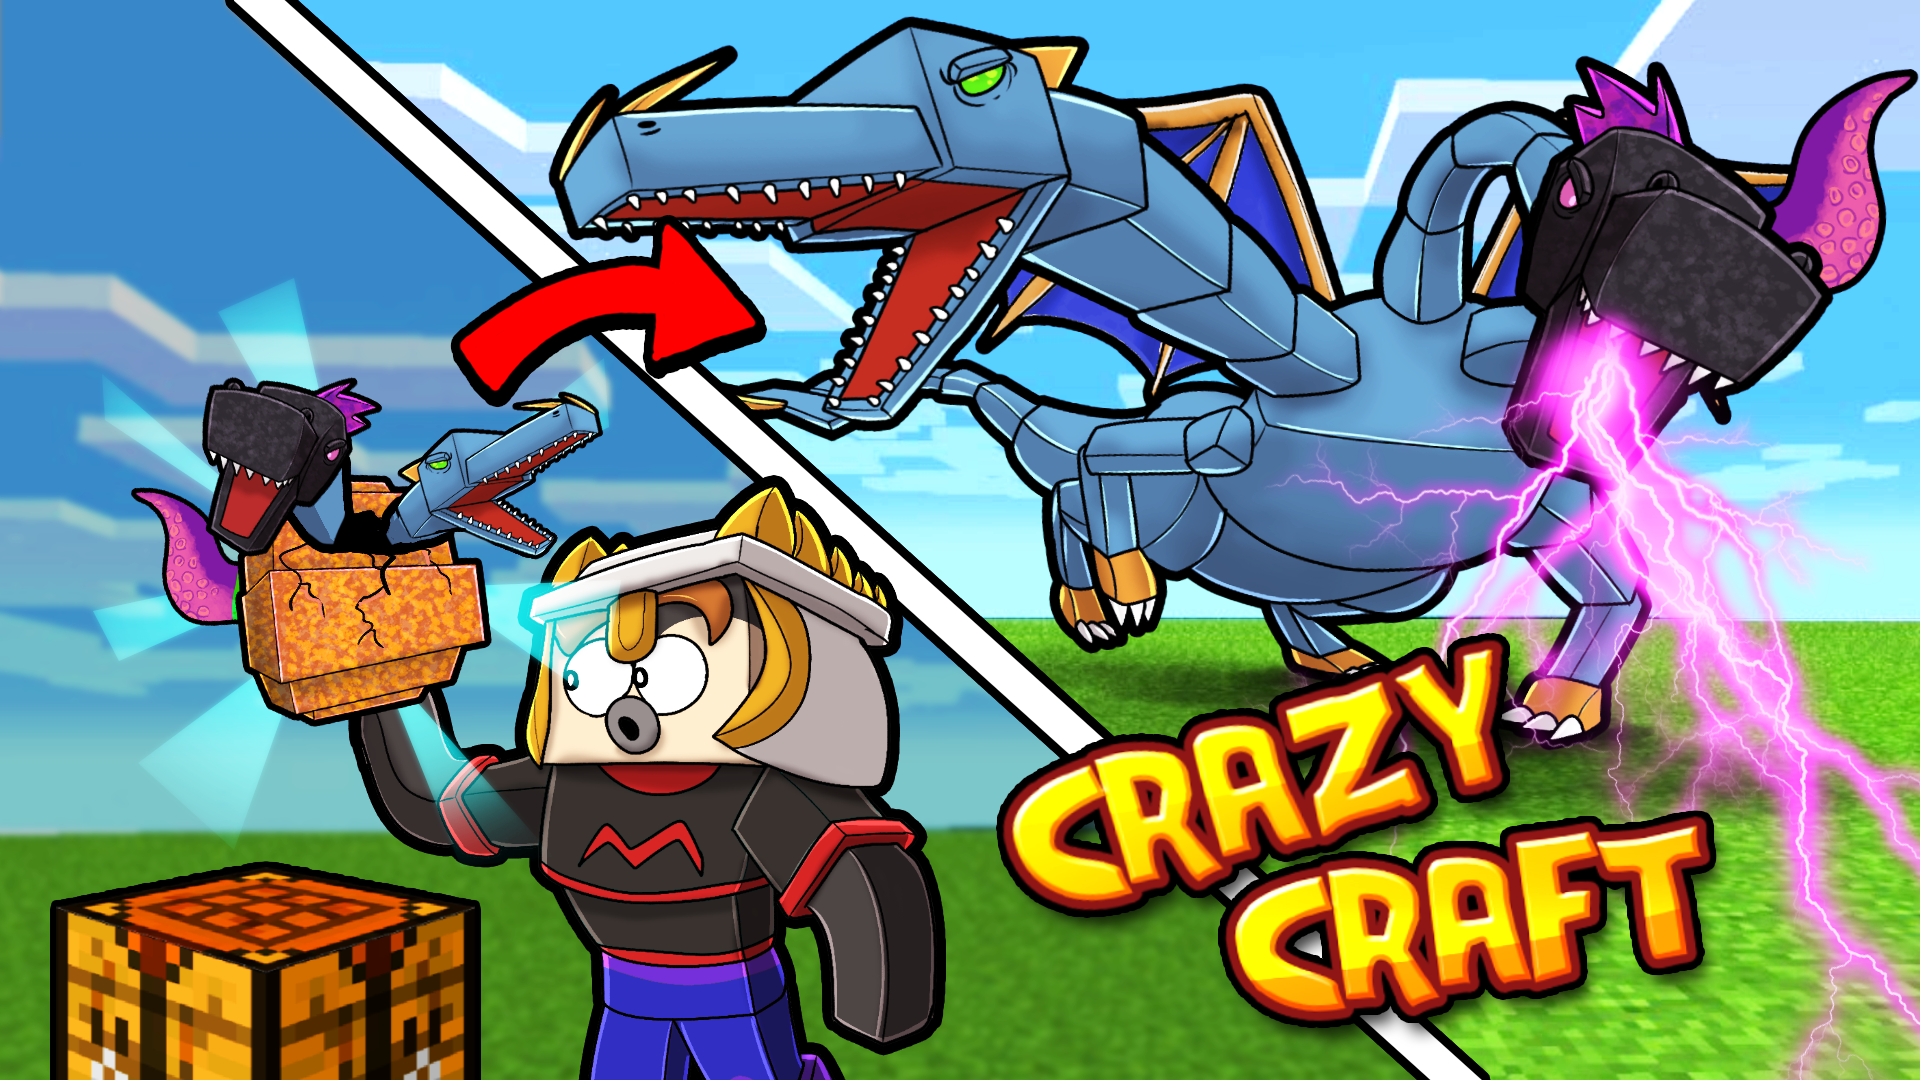 Crazy-Craft-Cody-Vs-Queen-Dragon